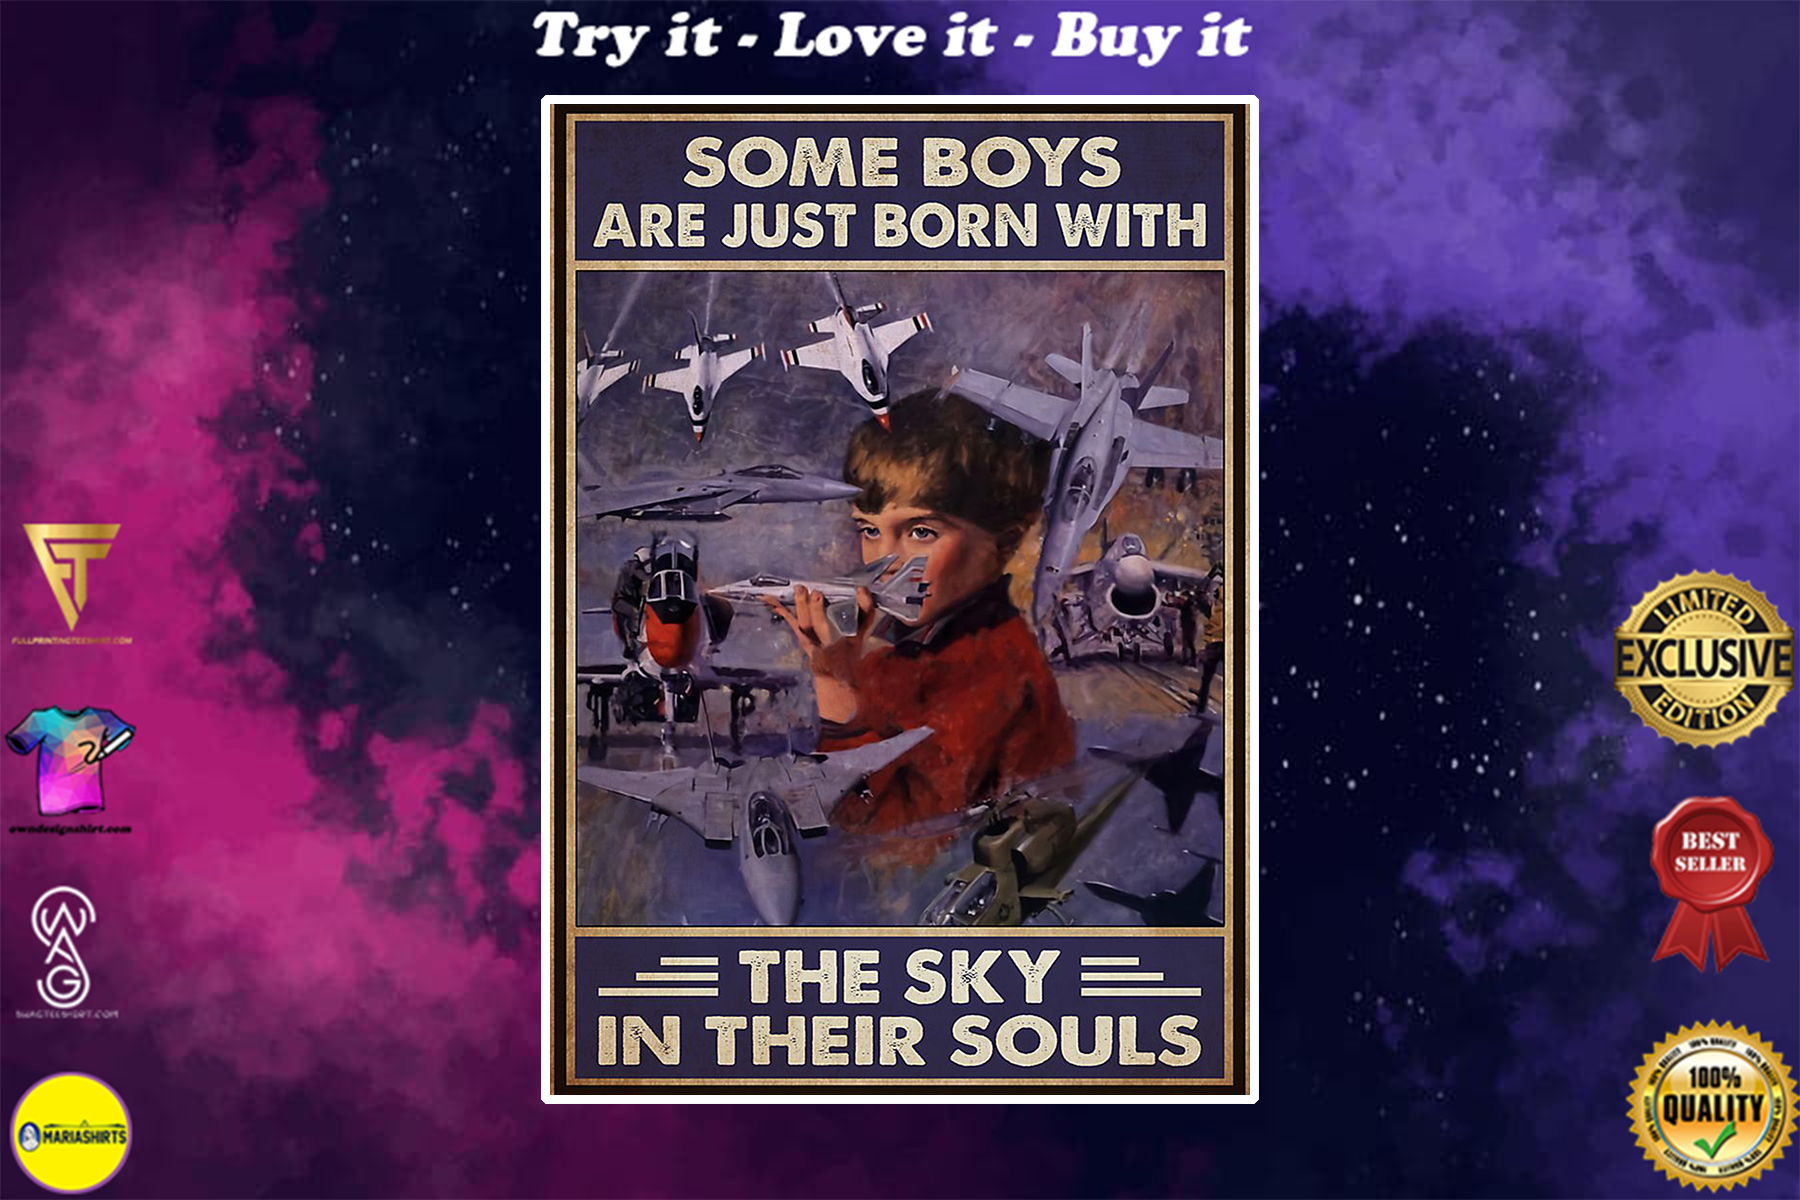 vintage jet aircraft some boys are just born with the sky in their souls poster